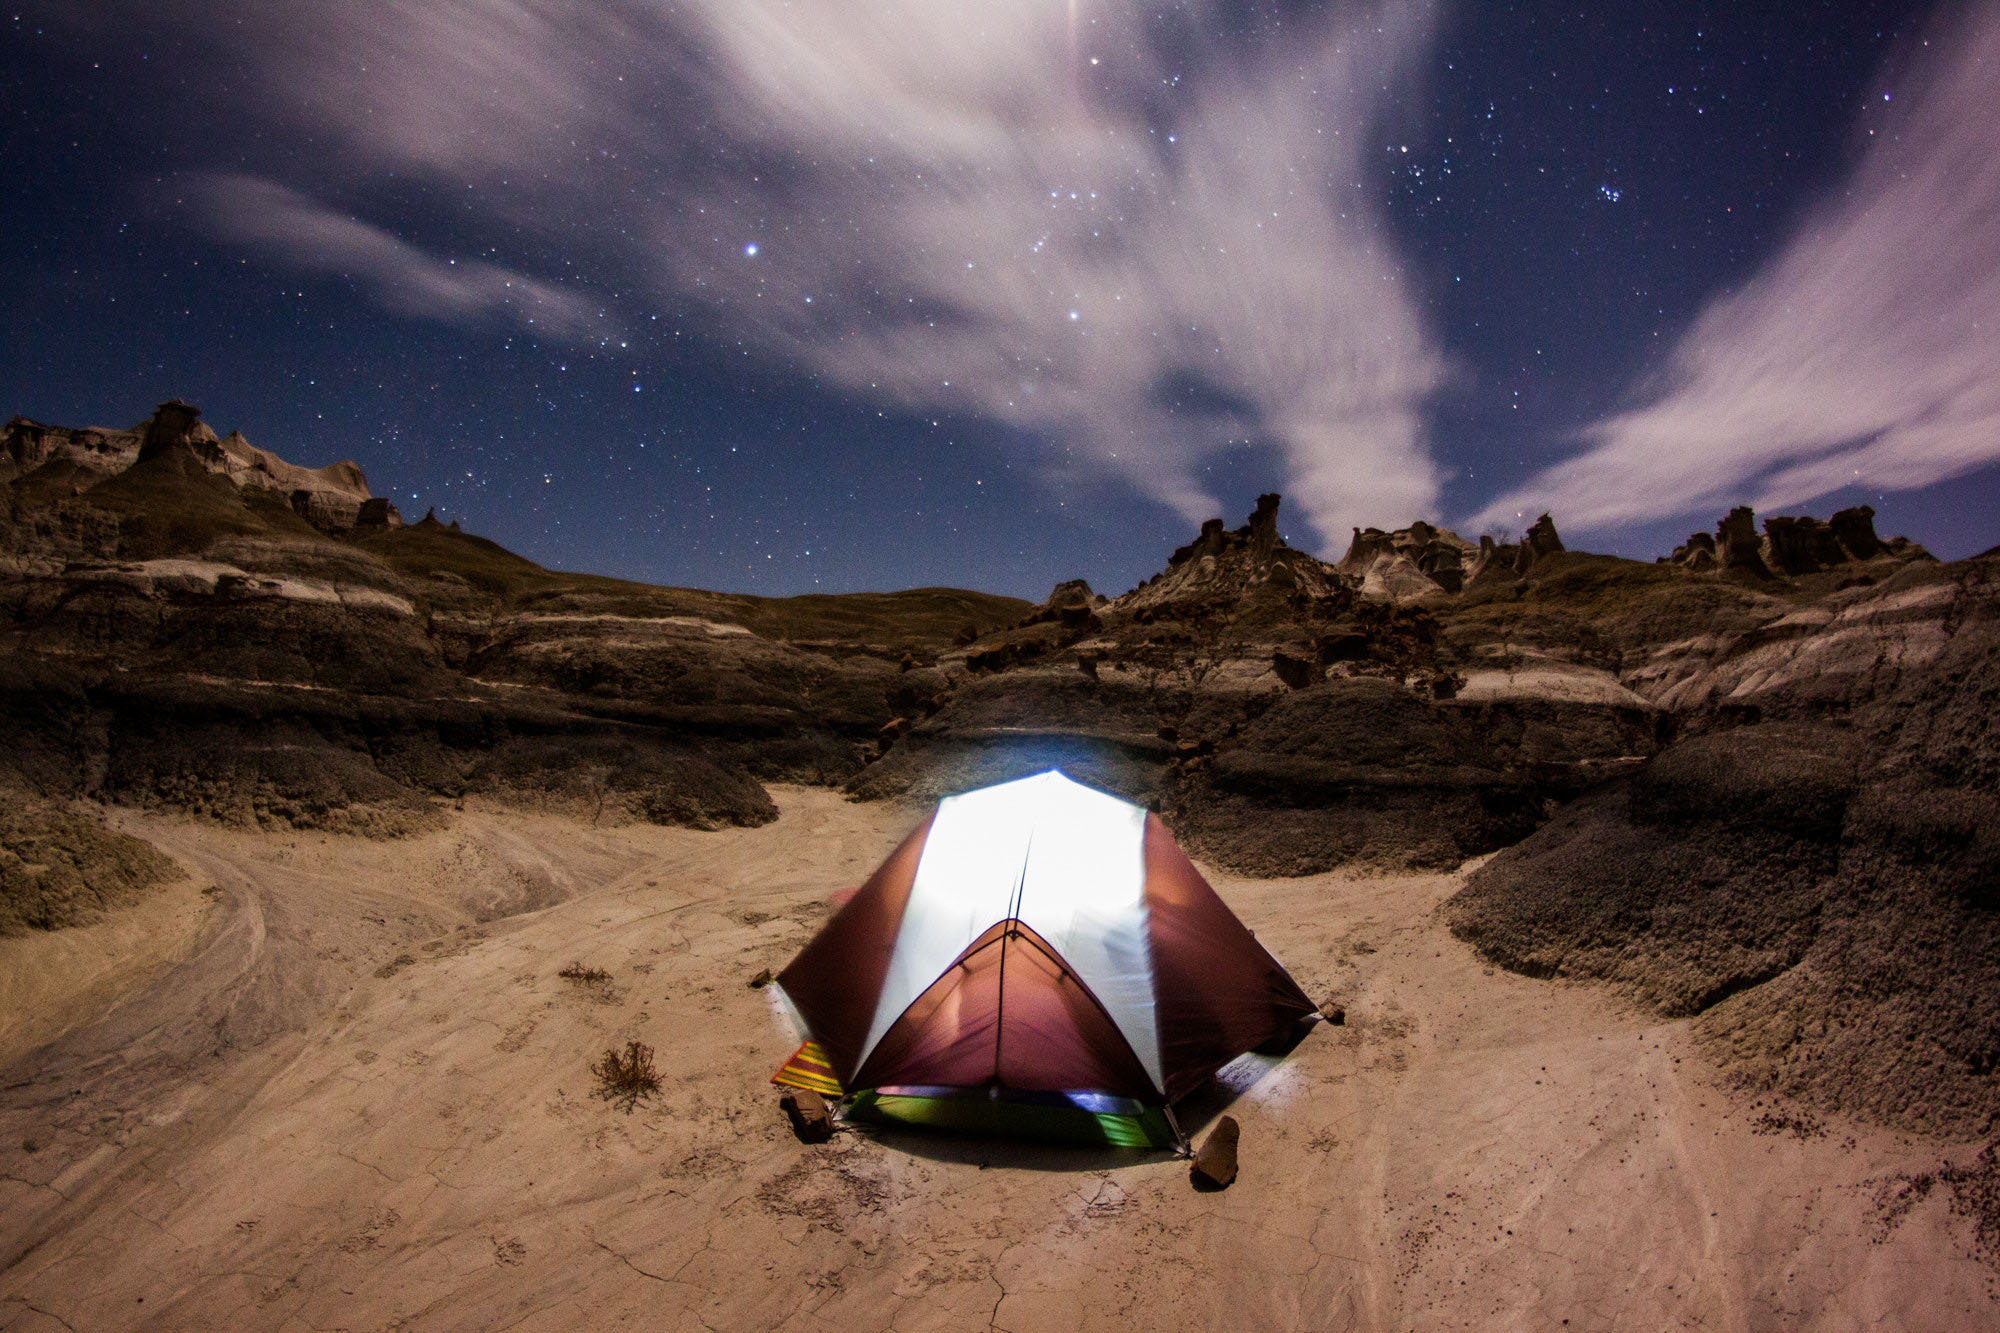 Adventure, camping,tent,rock,sand